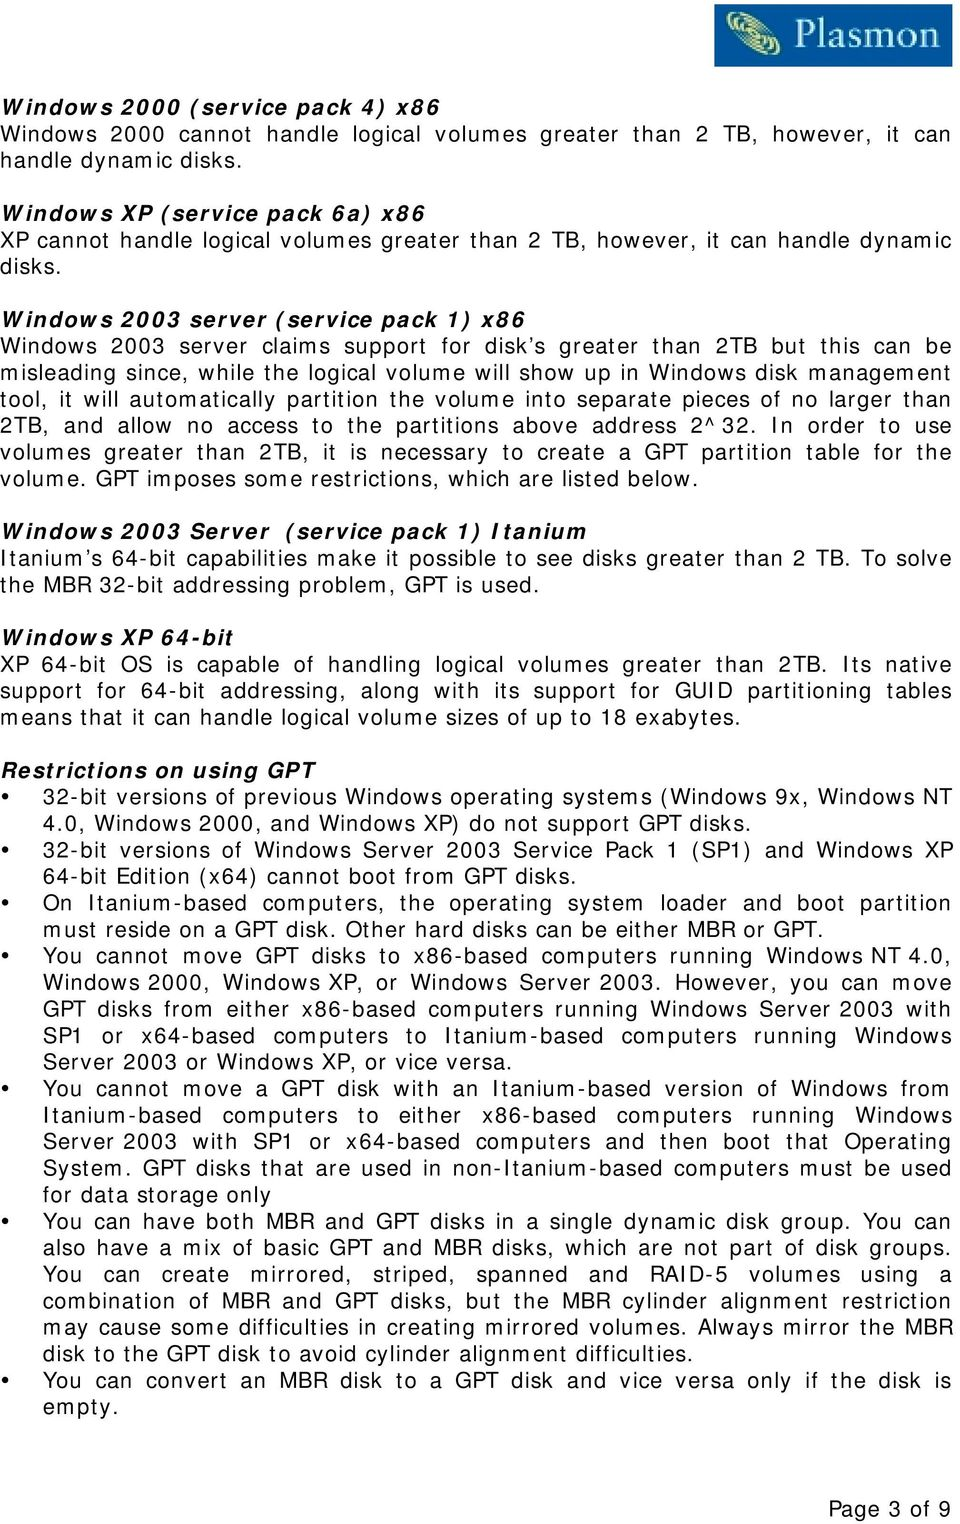 Windows 2003 server (service pack 1) x86 Windows 2003 server claims support for disk s greater than 2TB but this can be misleading since, while the logical volume will show up in Windows disk